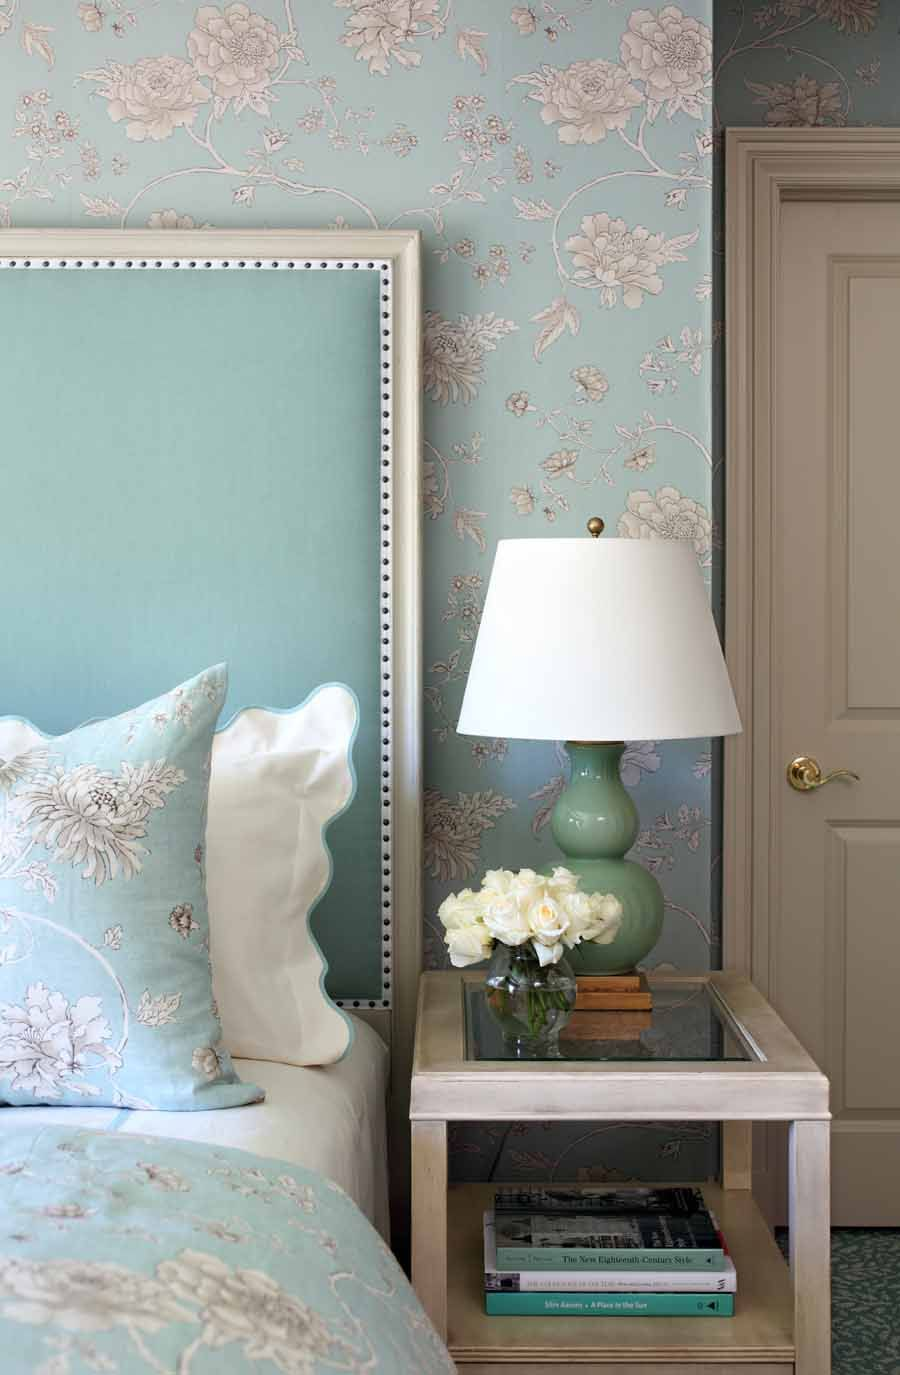 absolutely love the headboard and the floral print on both the bed and the wall